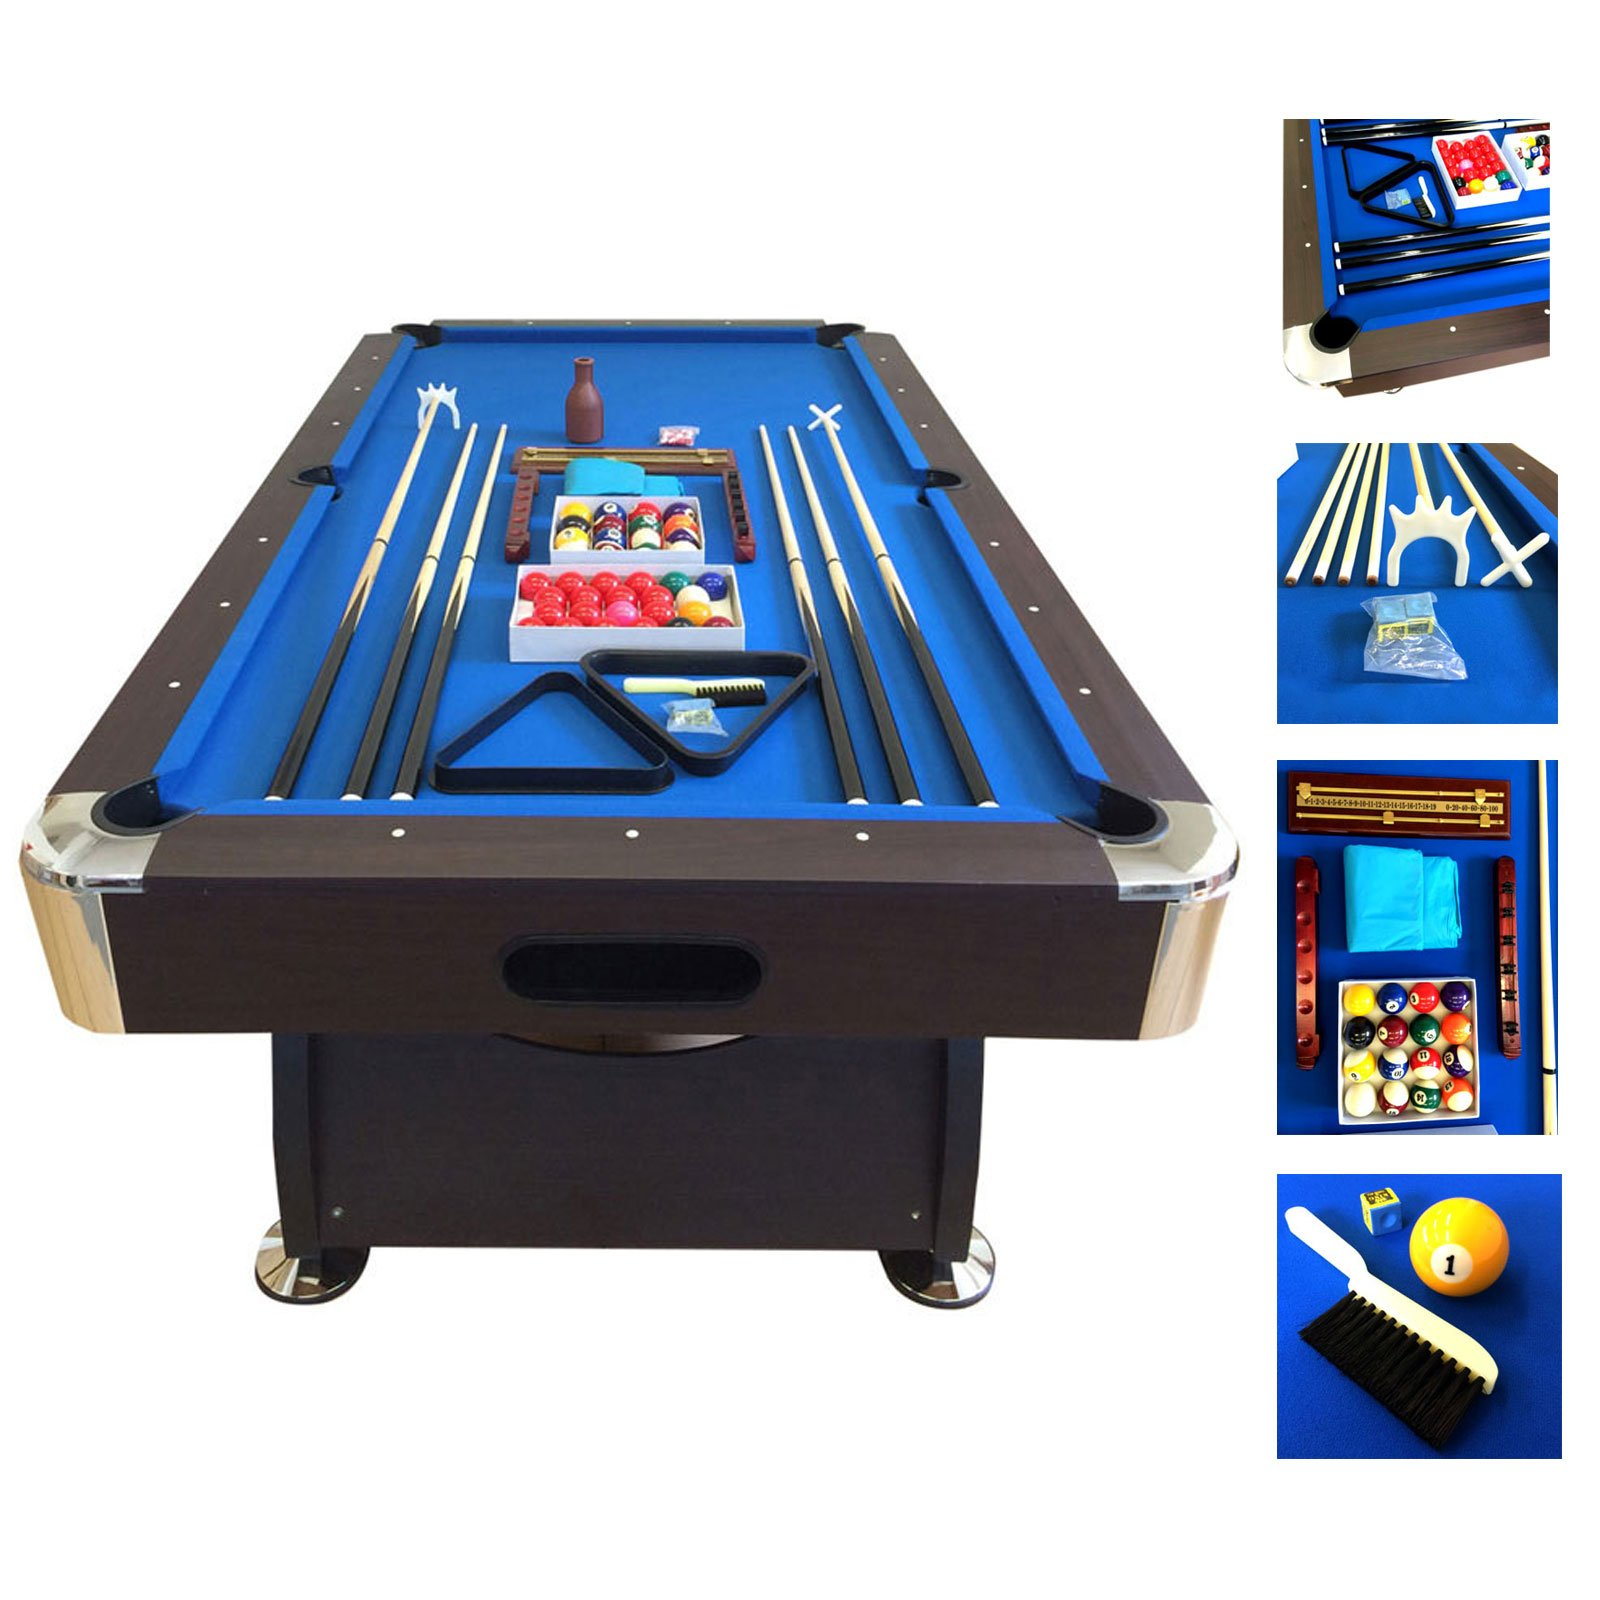 Billiard Pool Table Snooker Accessories